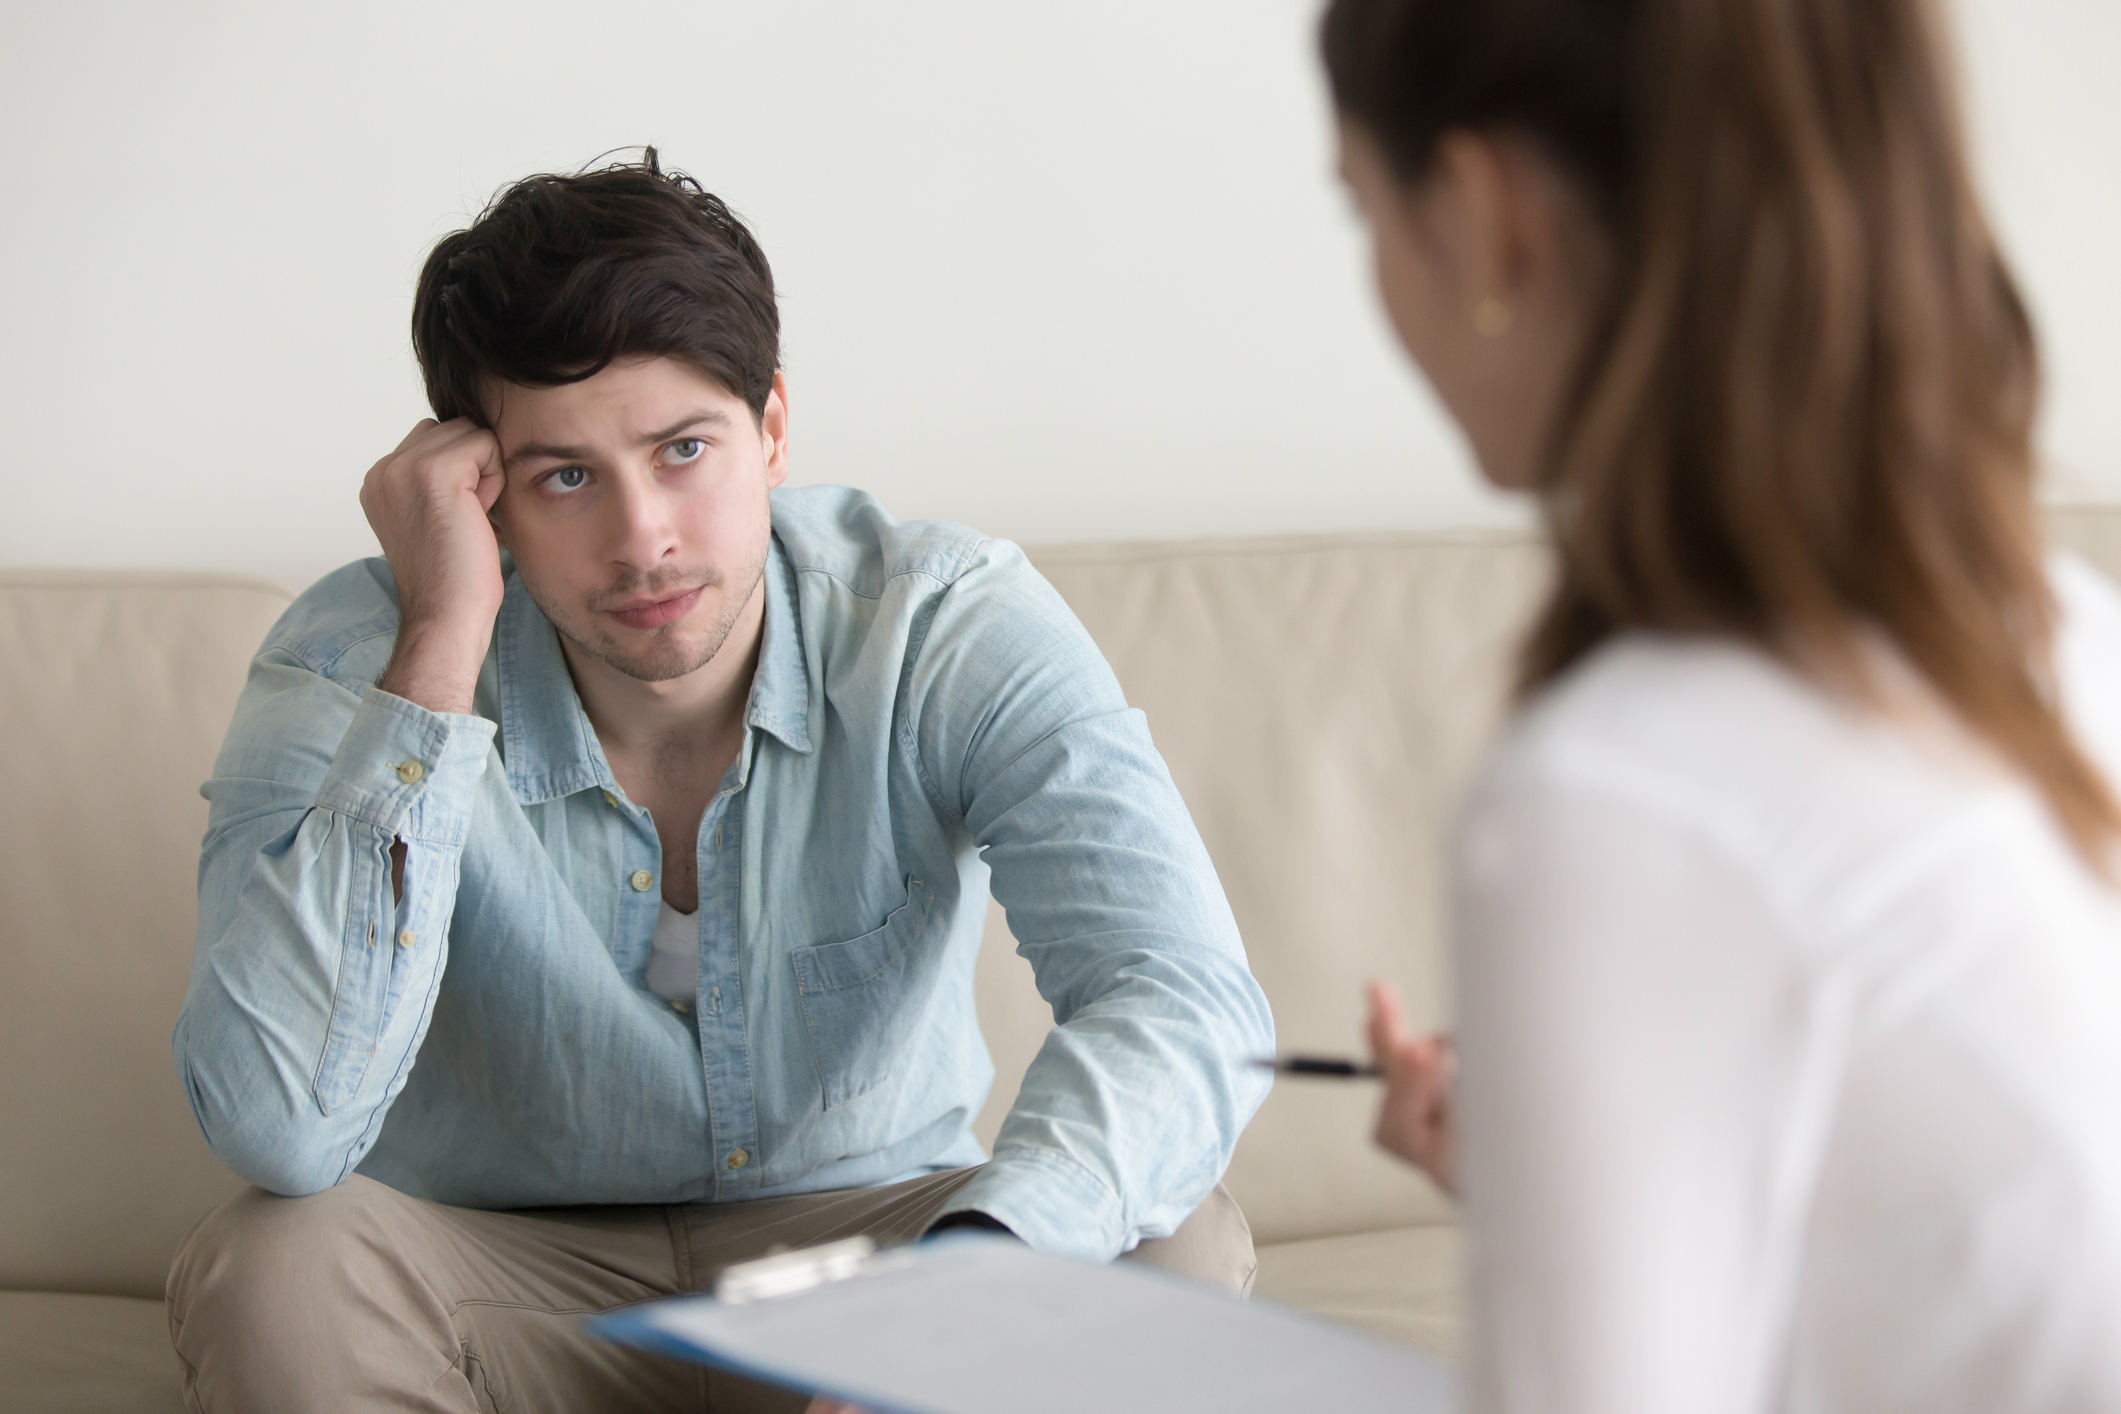 Male patient talking to female doctor about andropause